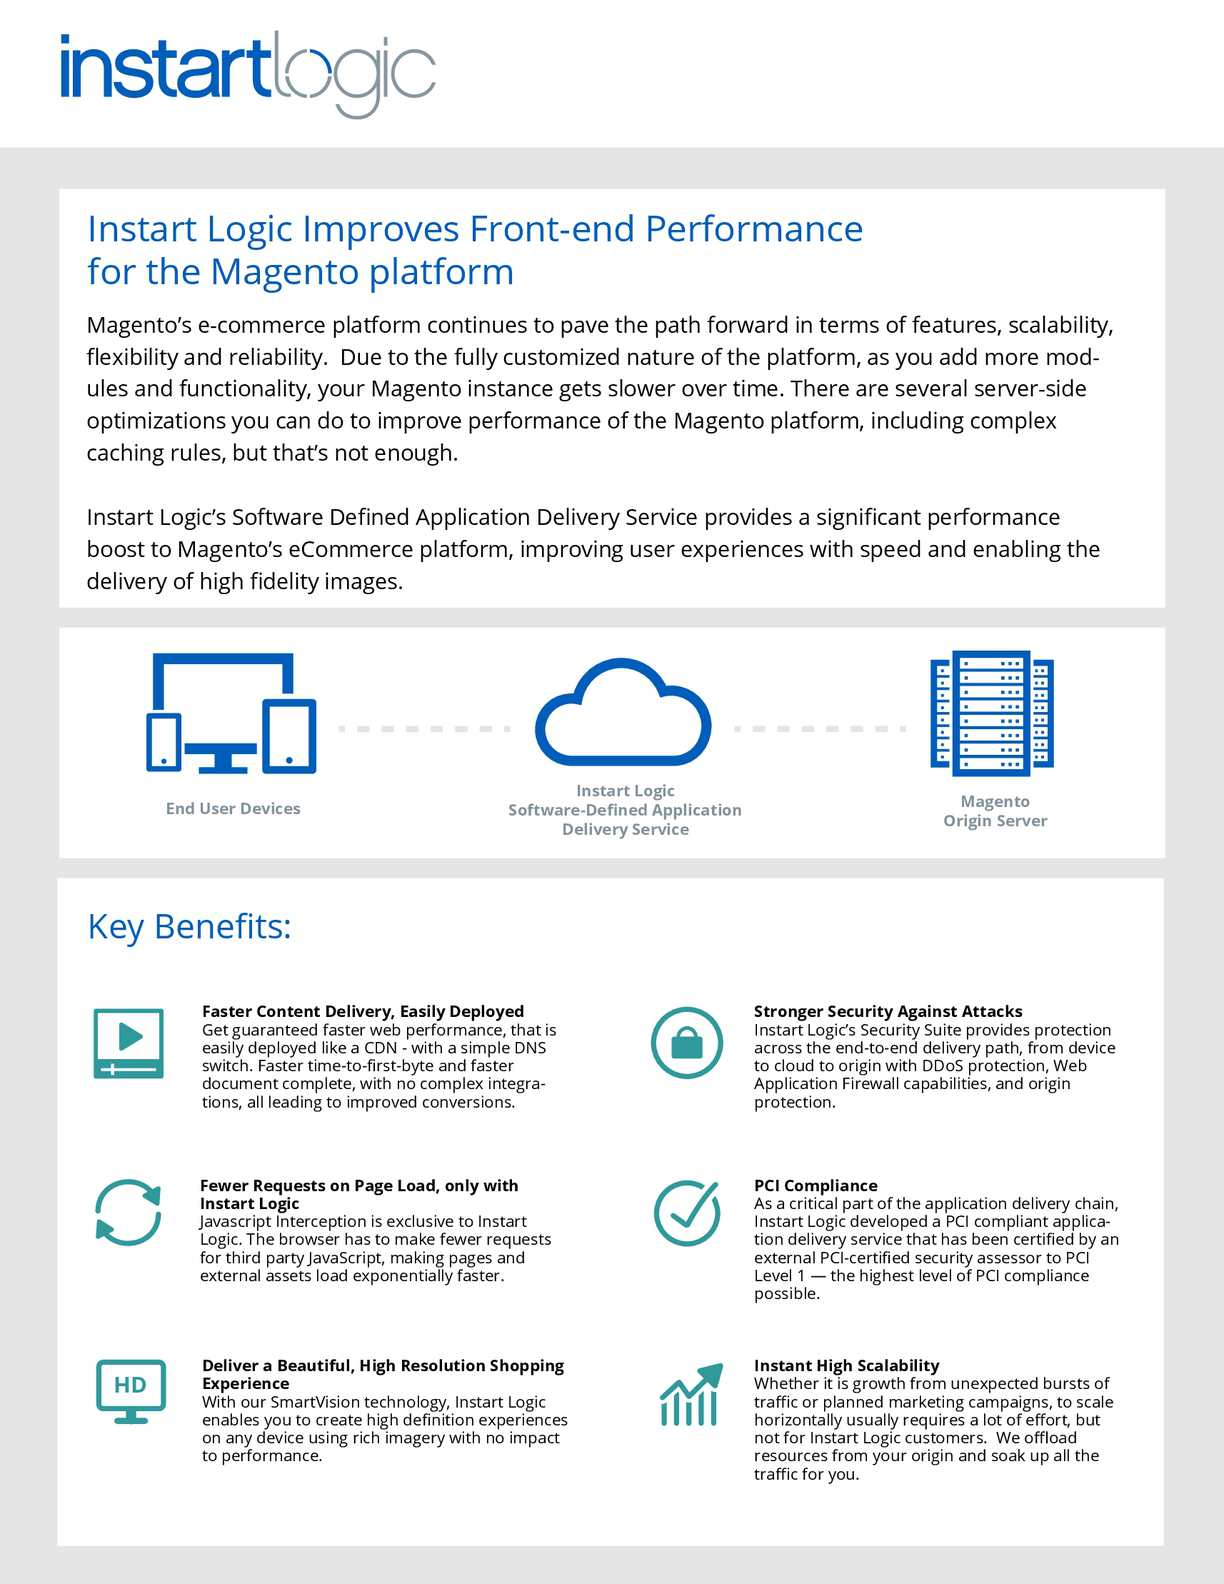 Calamo Instart Logic Improves Front End Performance For Magento How Improving Page Load Speed Can Increase Your Website Traffic And User Experience Platform